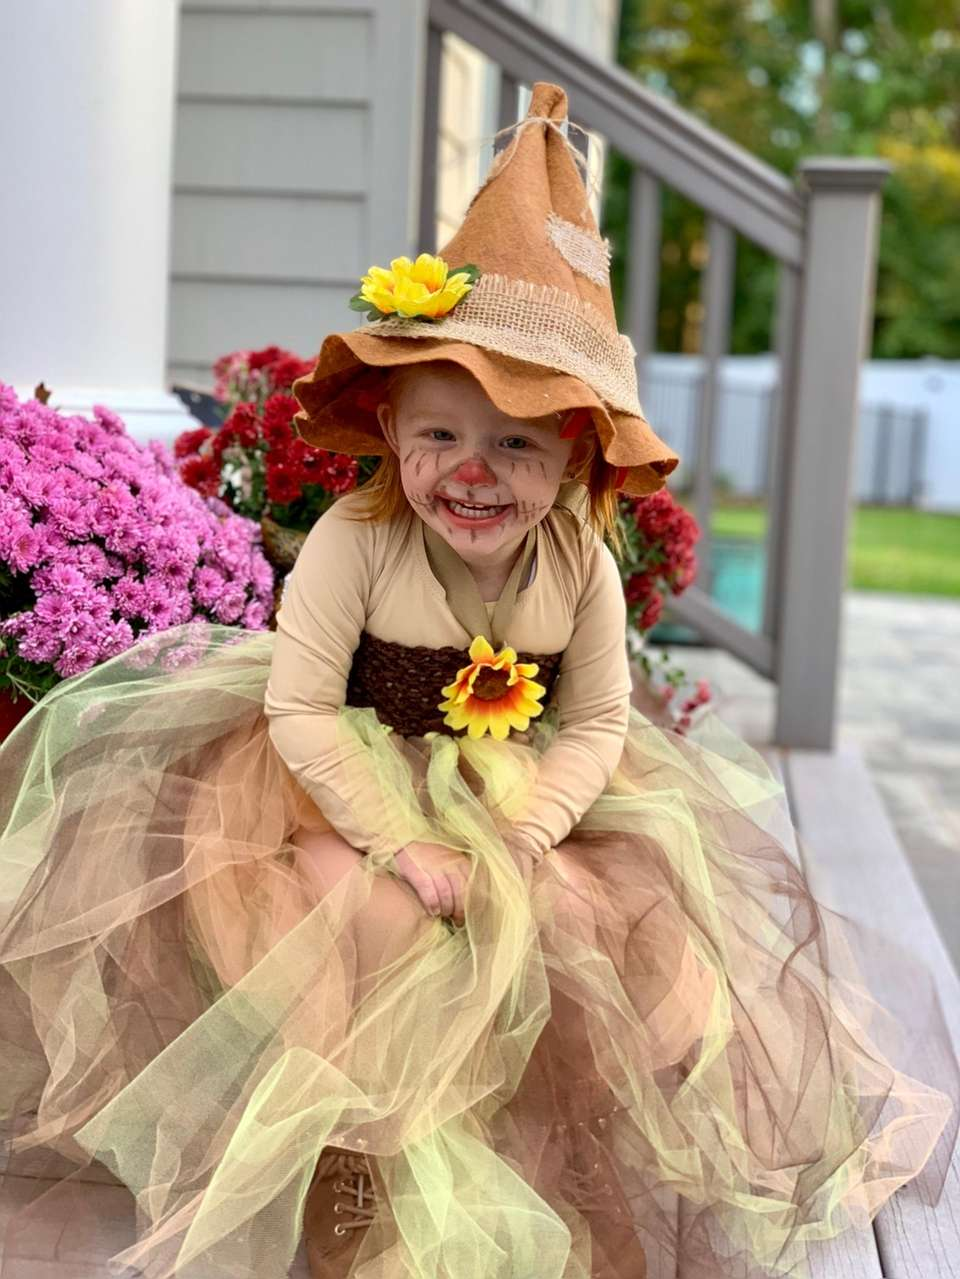 The sweetest scarecrow around.